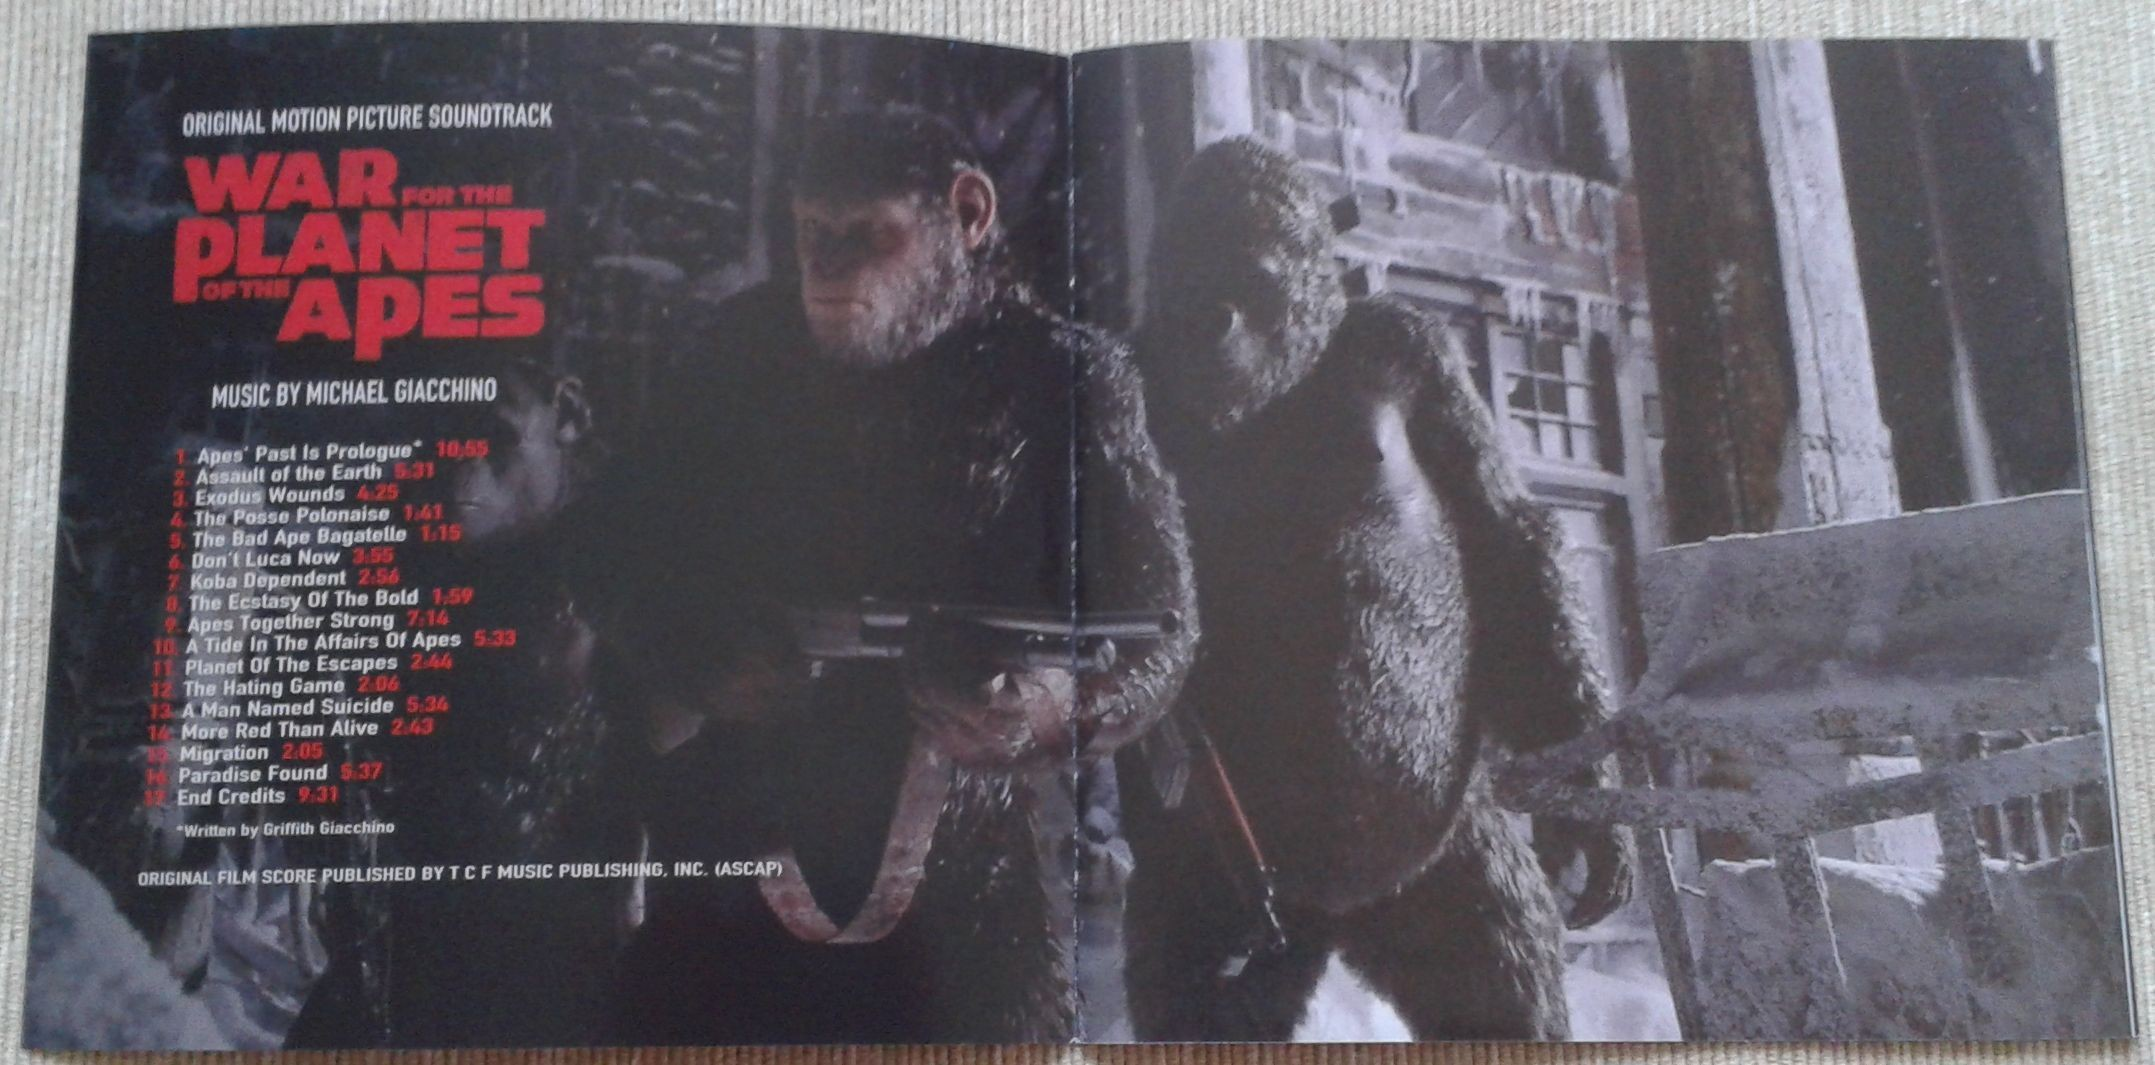 6. War for the Planet of the Apes booklet 2.jpg